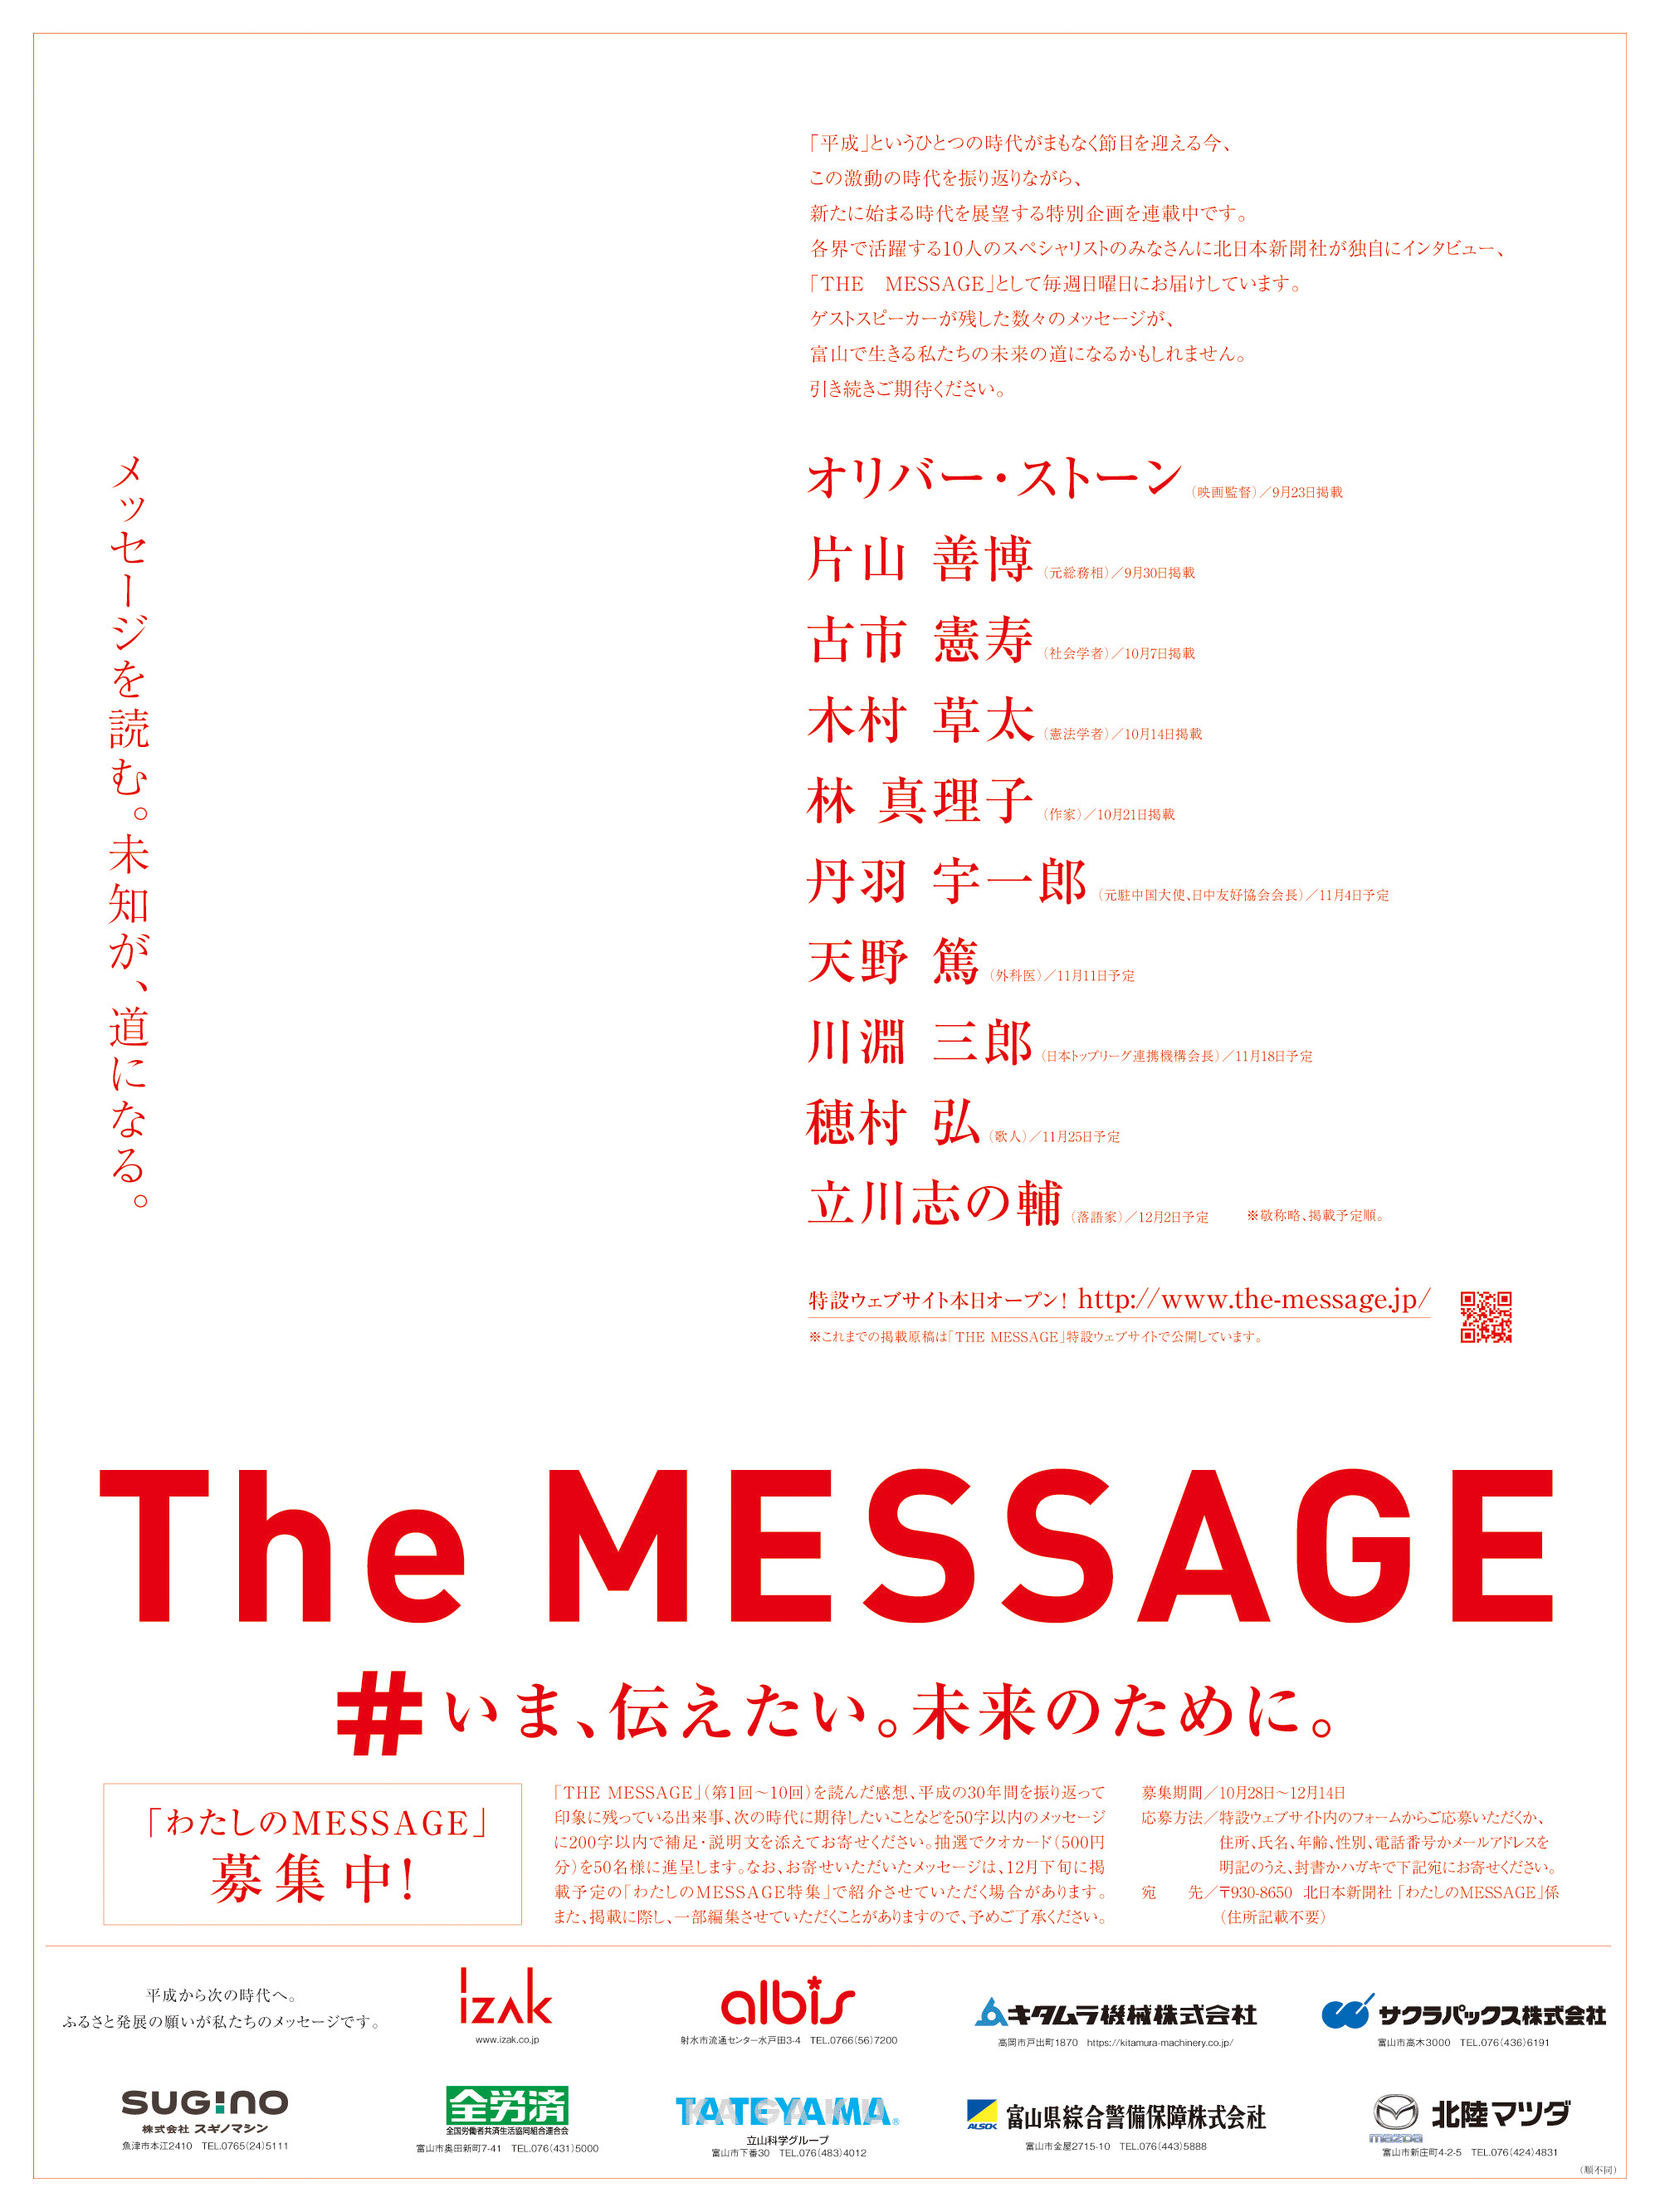 The MESSAGE 寺越寛史